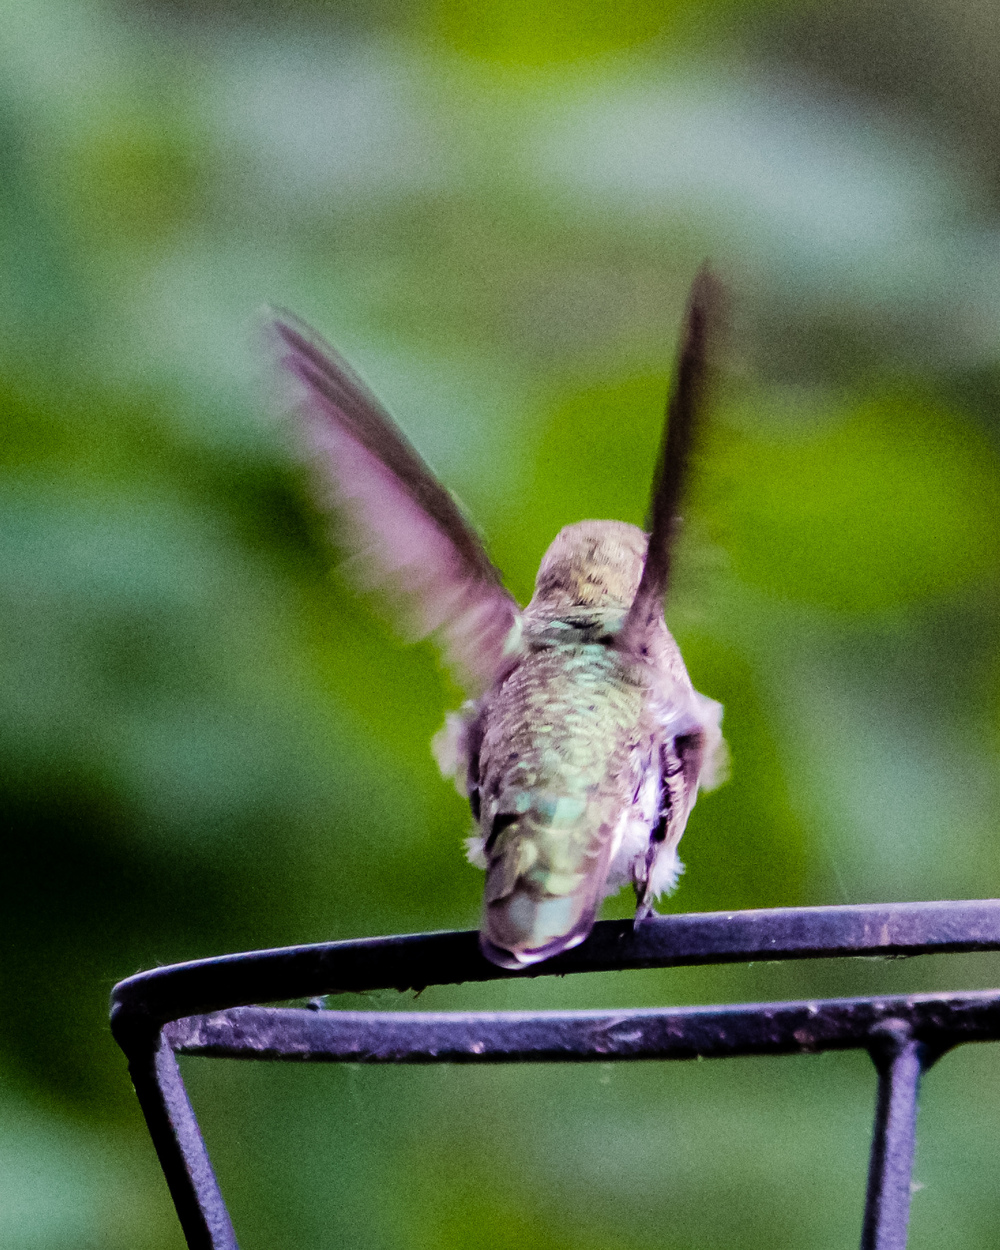 A female Anna's hummingbird taking flight off of a torch holder.